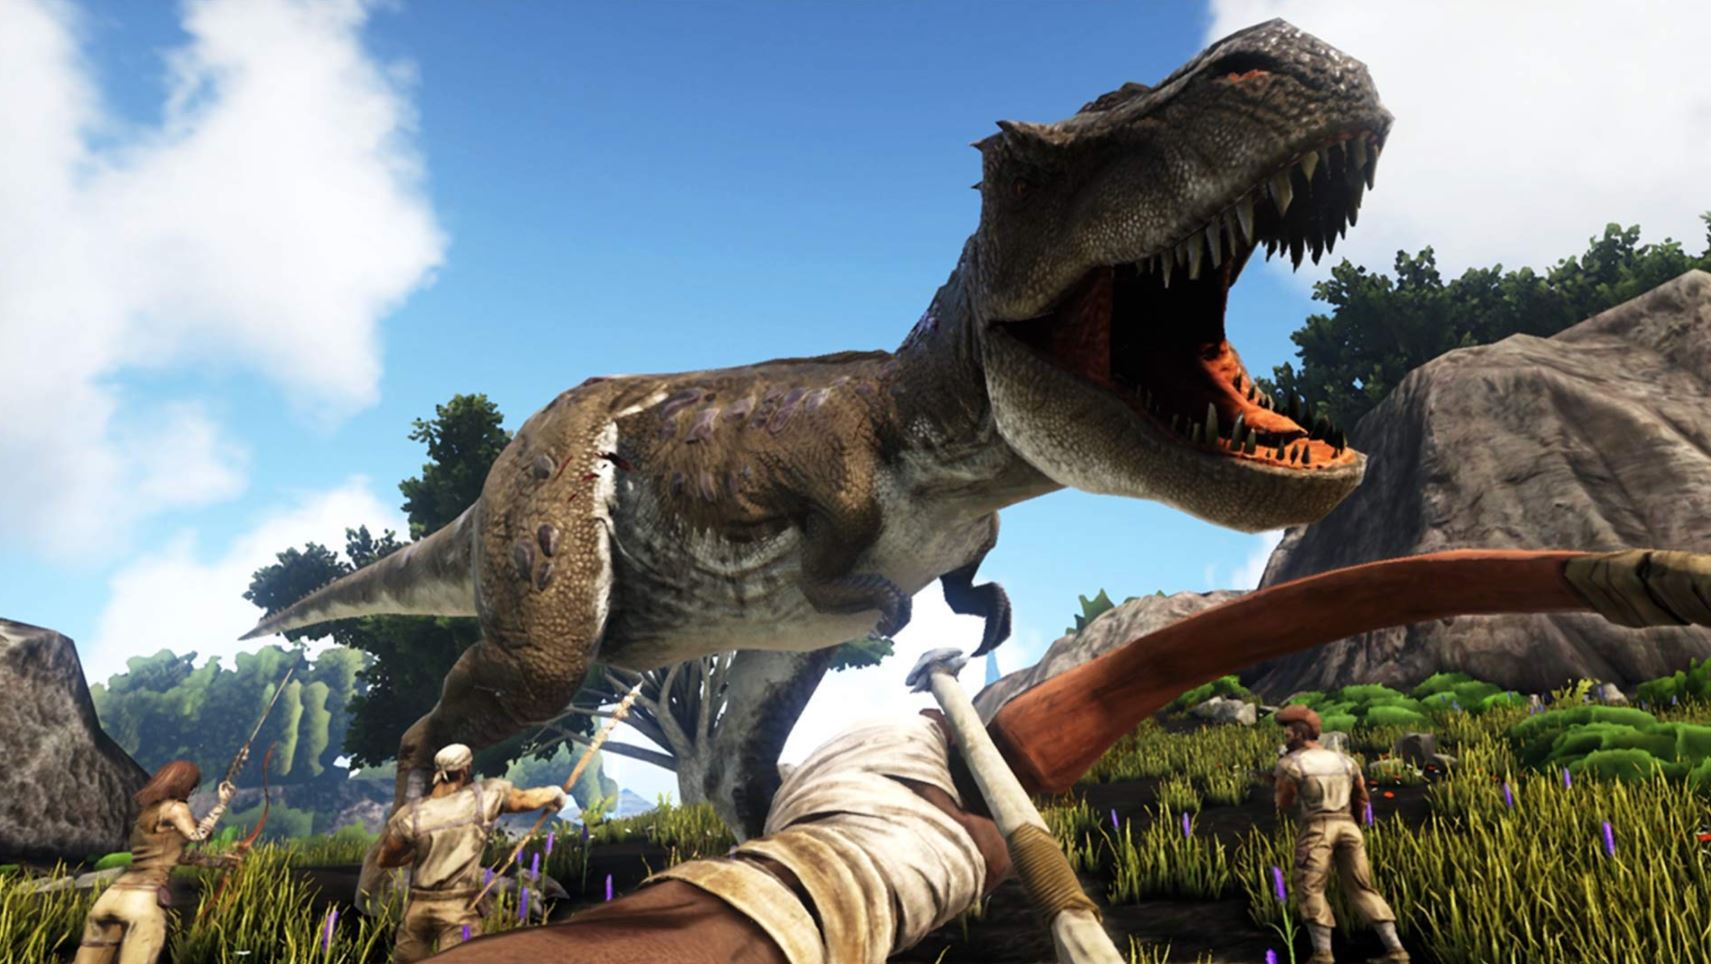 ark-survival-evolved-update-2-51-patch-notes-enhances-ps5-visuals-for-players